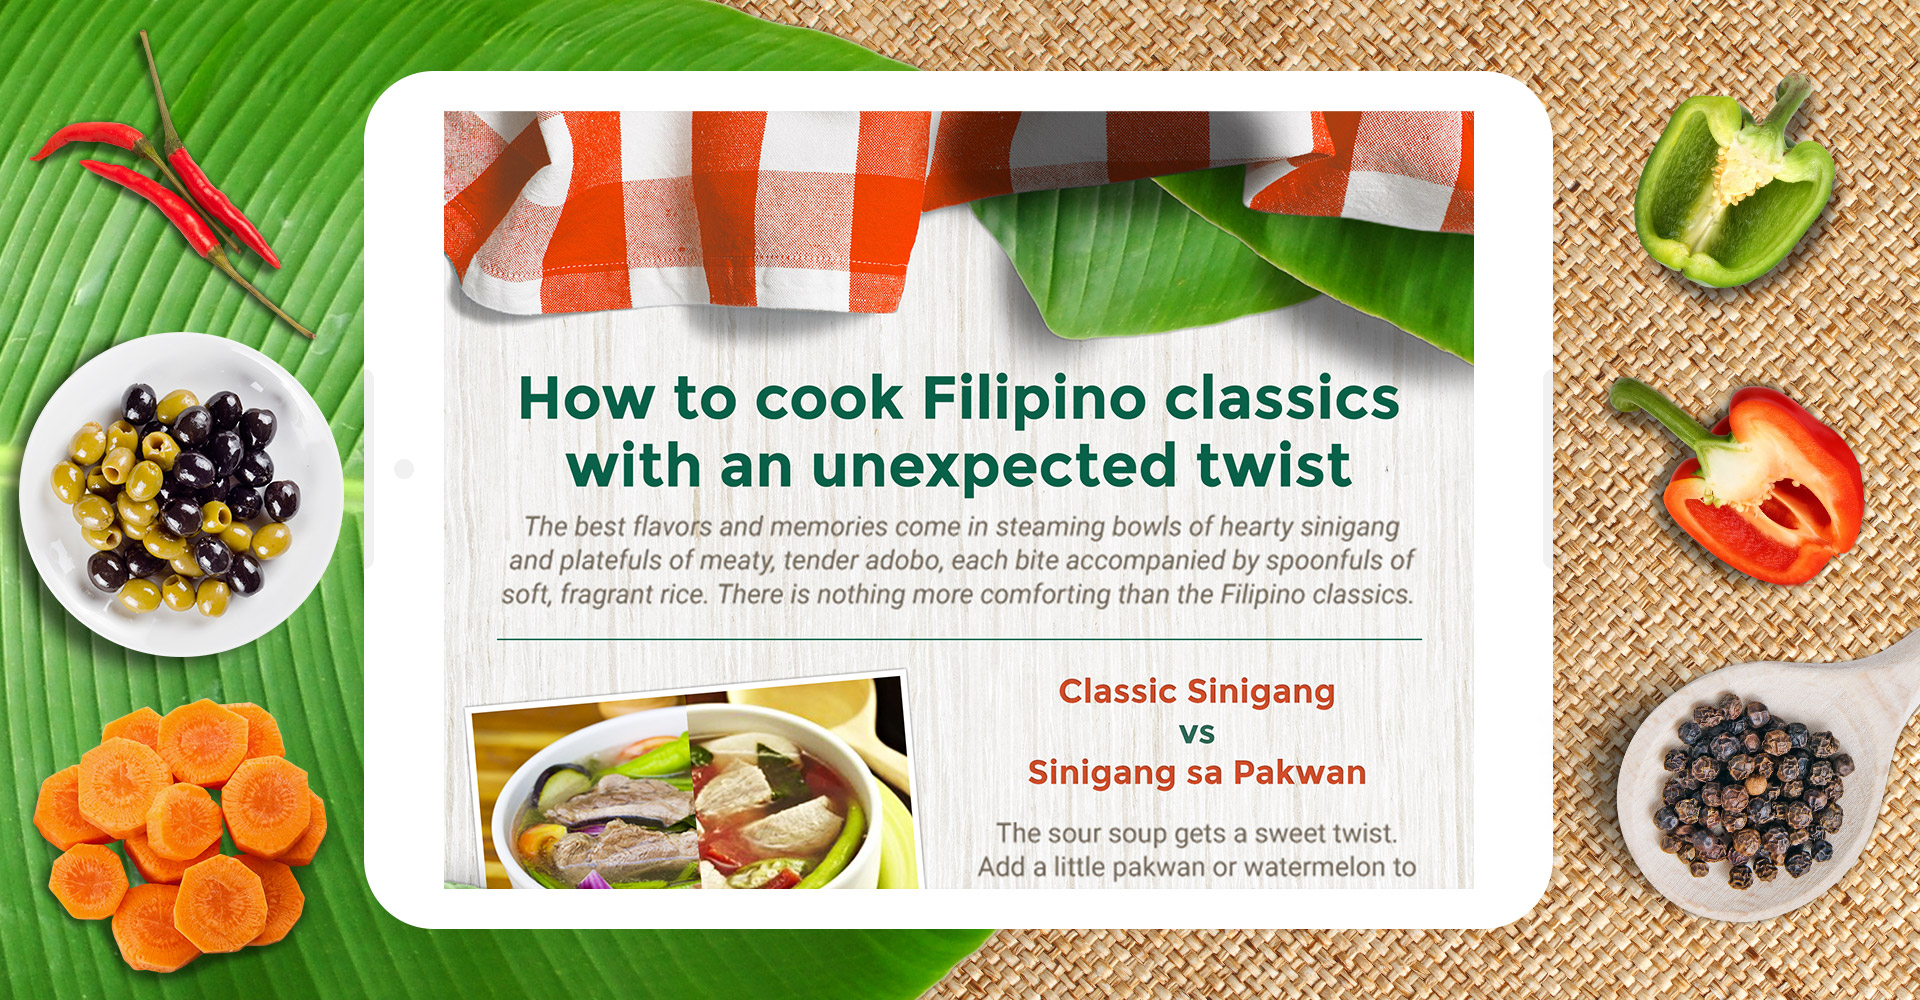 knorr-filipino-classic-recipes-twist-04